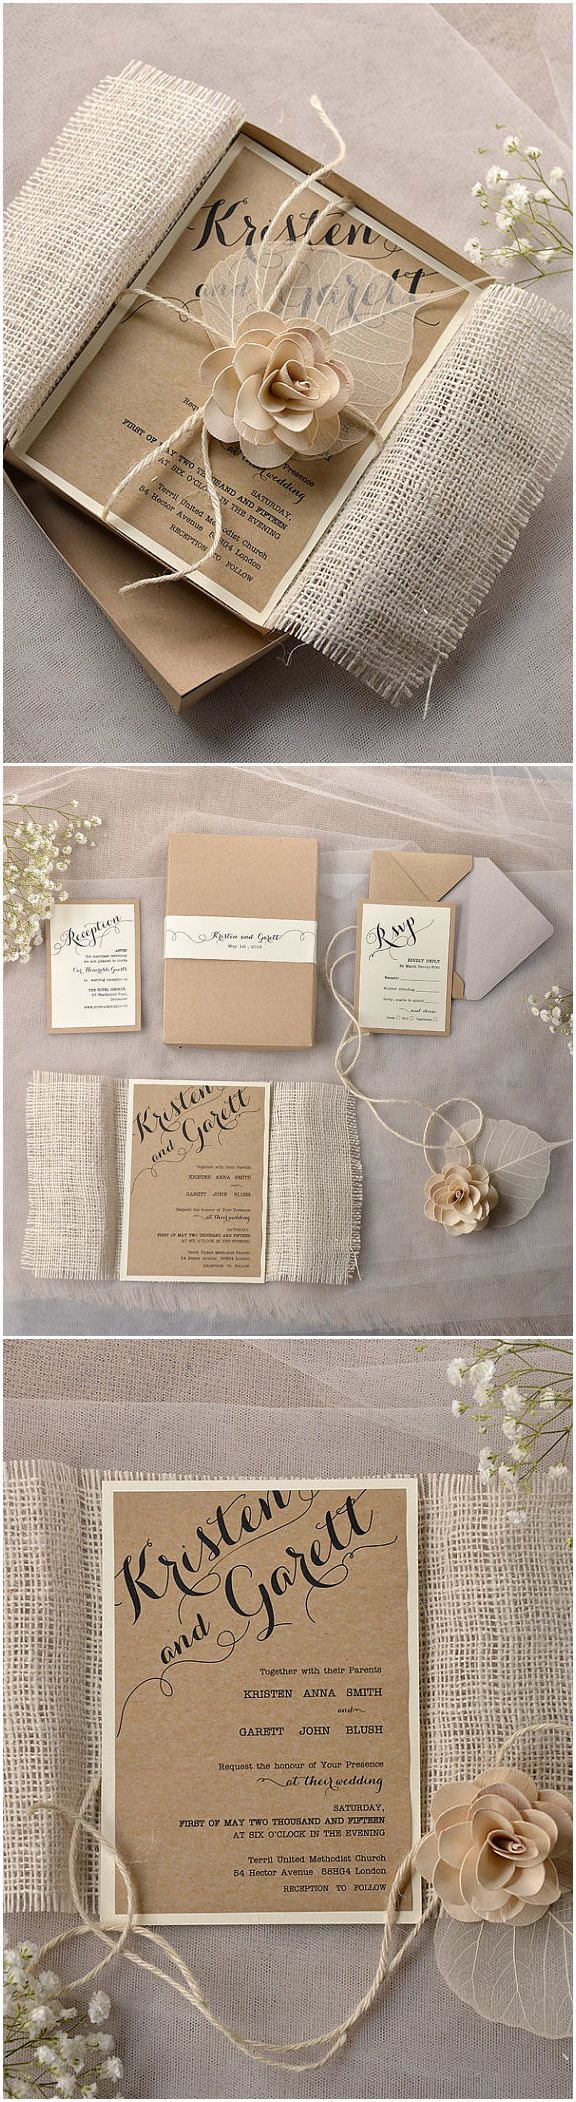 Lace And Burlap Rustic Box Wedding Invitations With Flowers